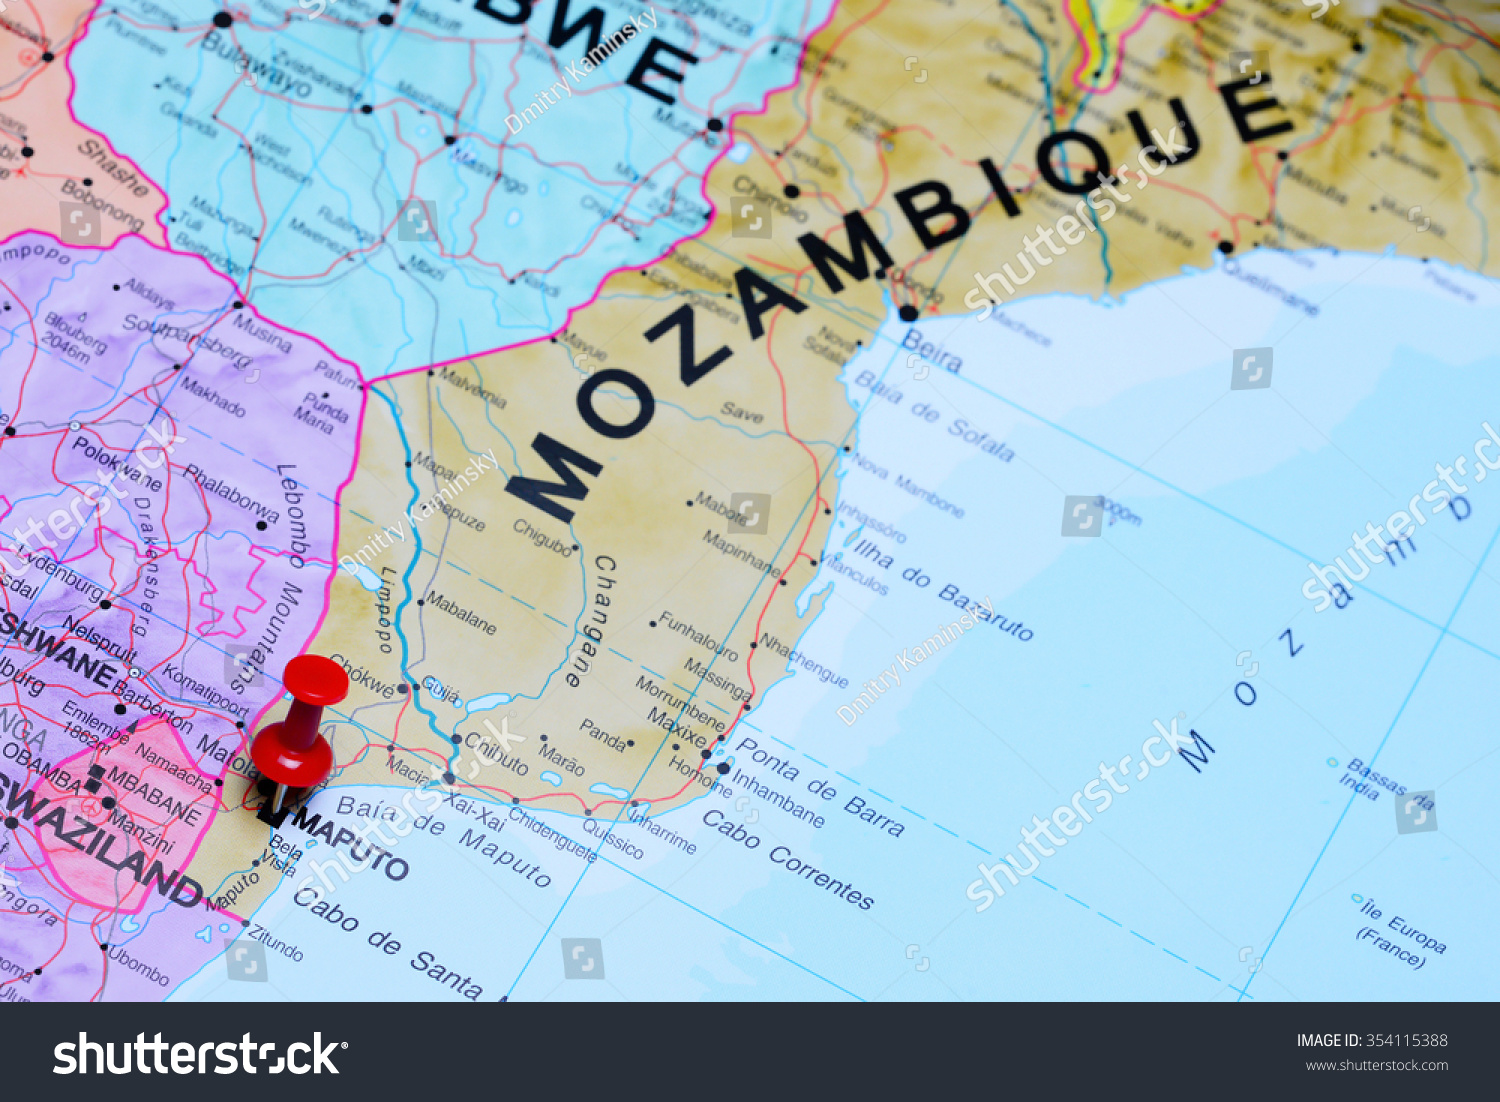 Maputo Pinned On Map Africa Stock Photo 354115388 Shutterstock